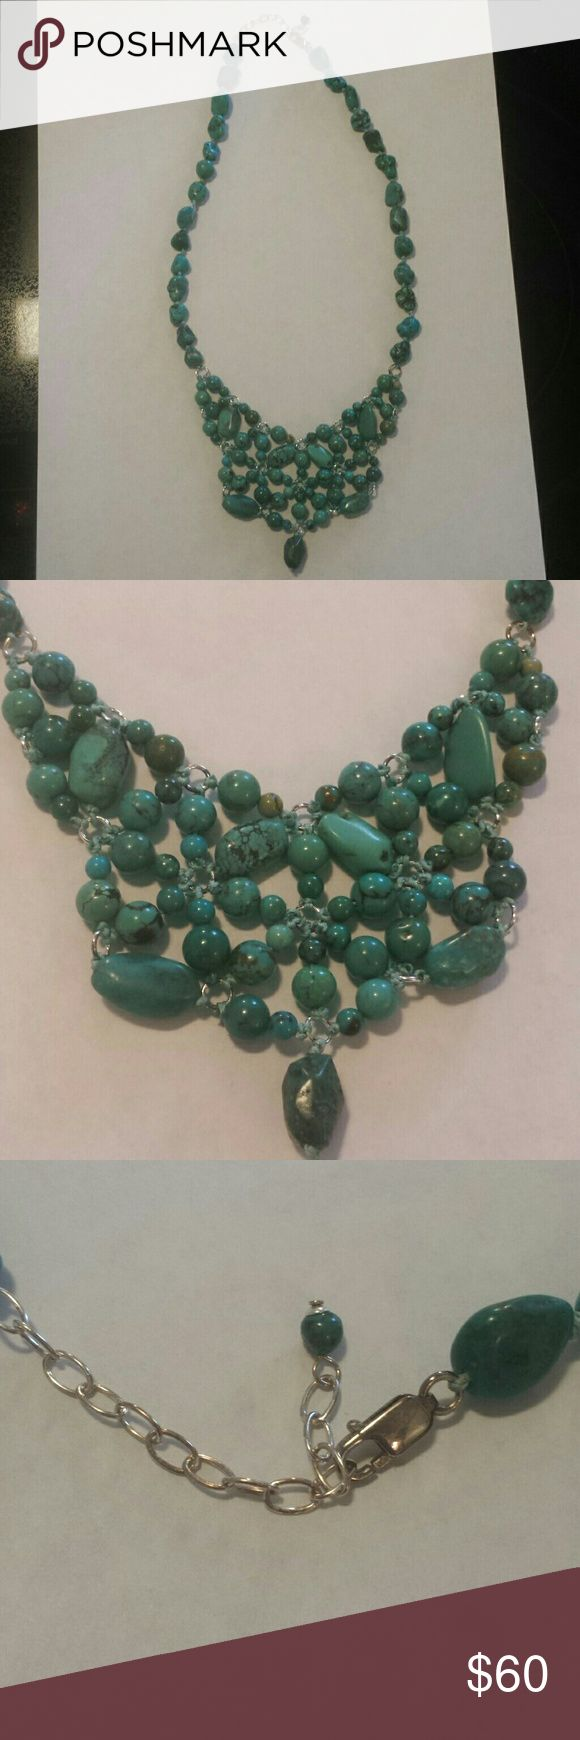 """Genuine Turquoise necklace Perfect condition 20"""" with extender"""" make an offer! HSN Jewelry Necklaces"""